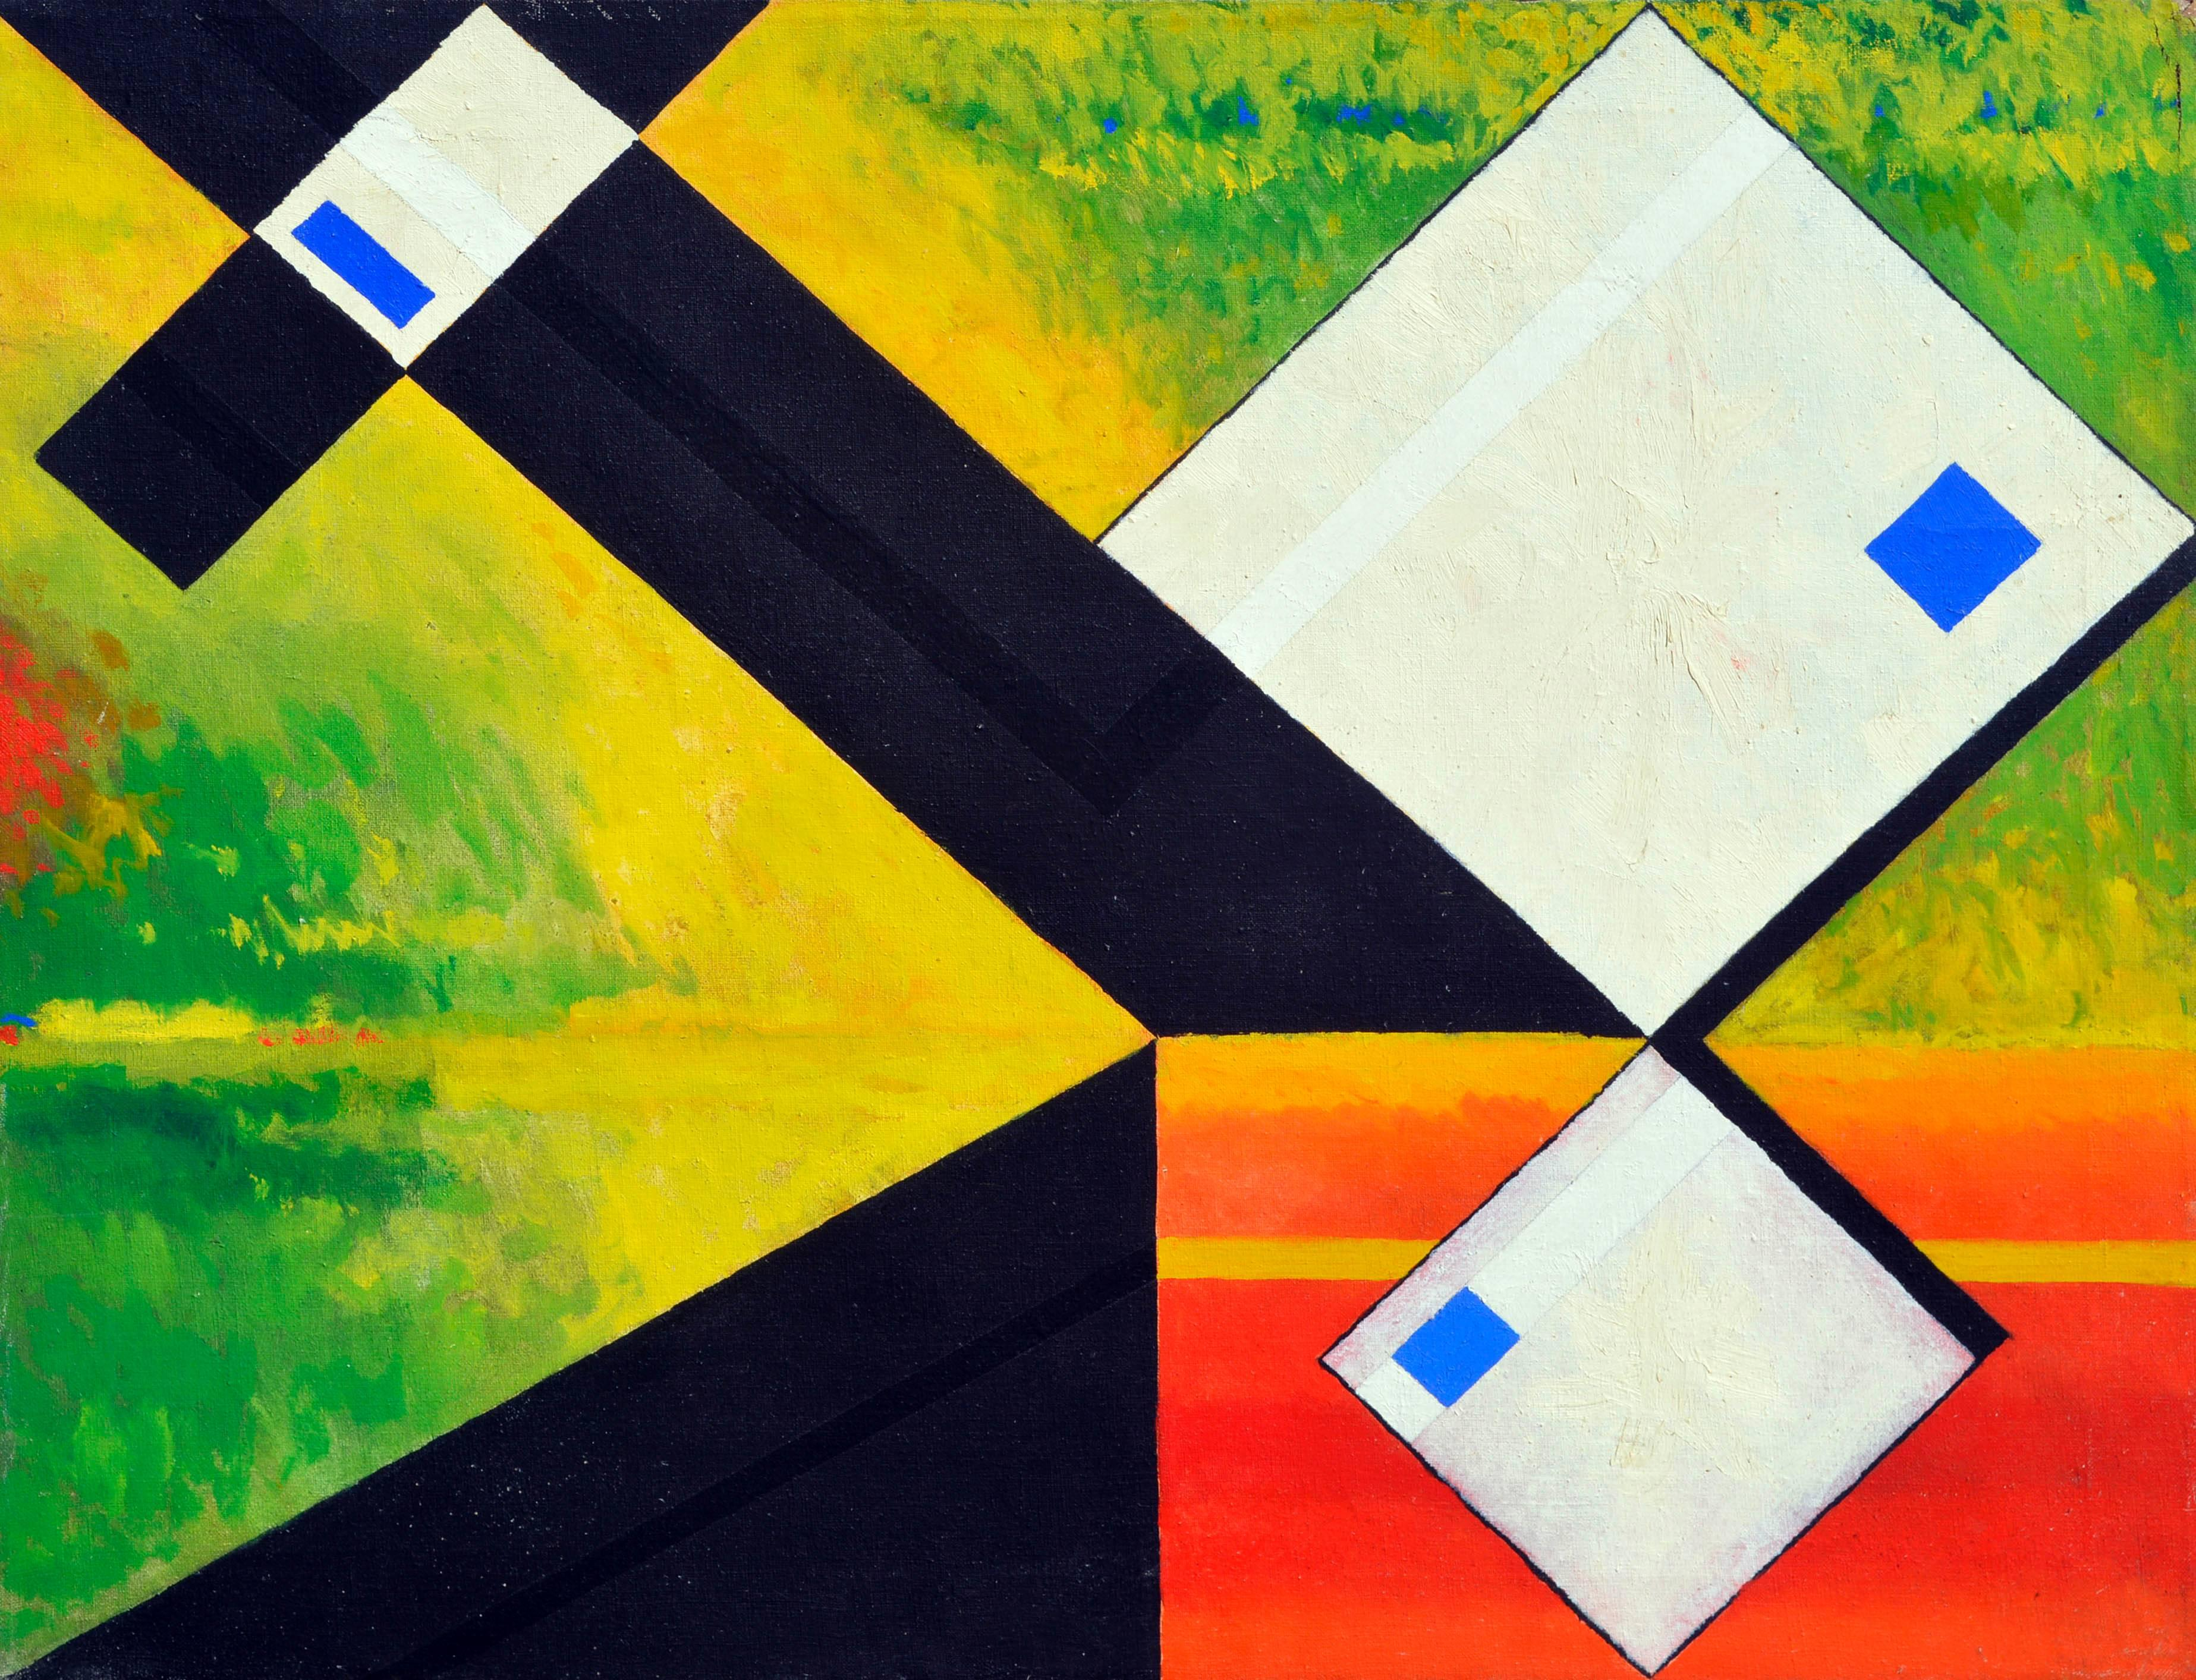 White Abstract Cubes -- San Francisco Abstract Expressionist School